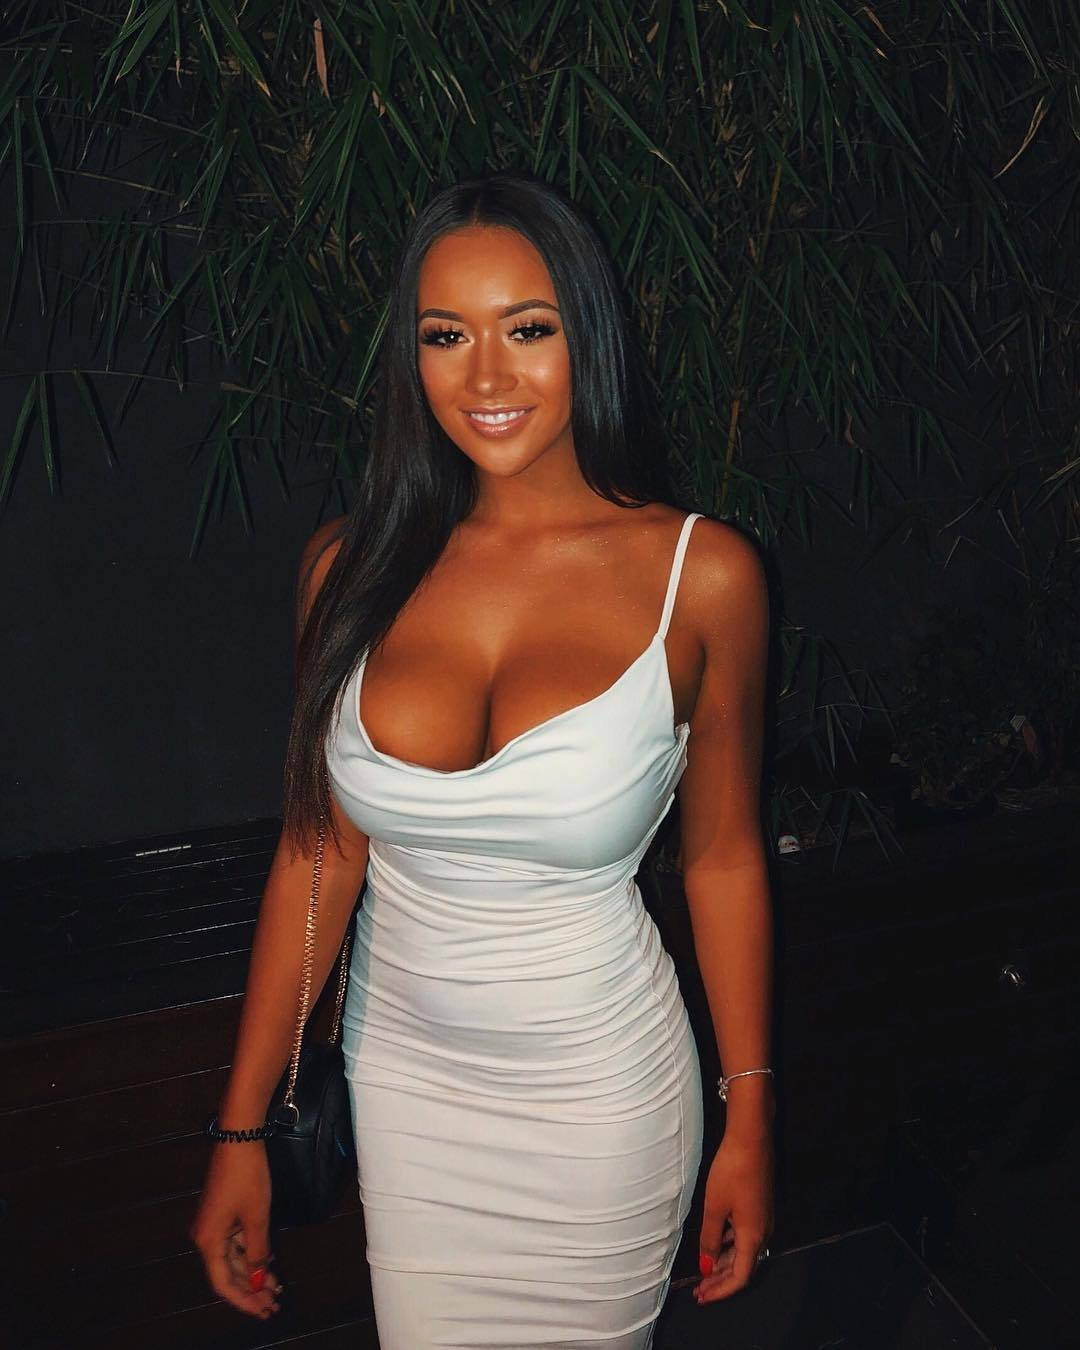 Girls with big boobs in tank tops